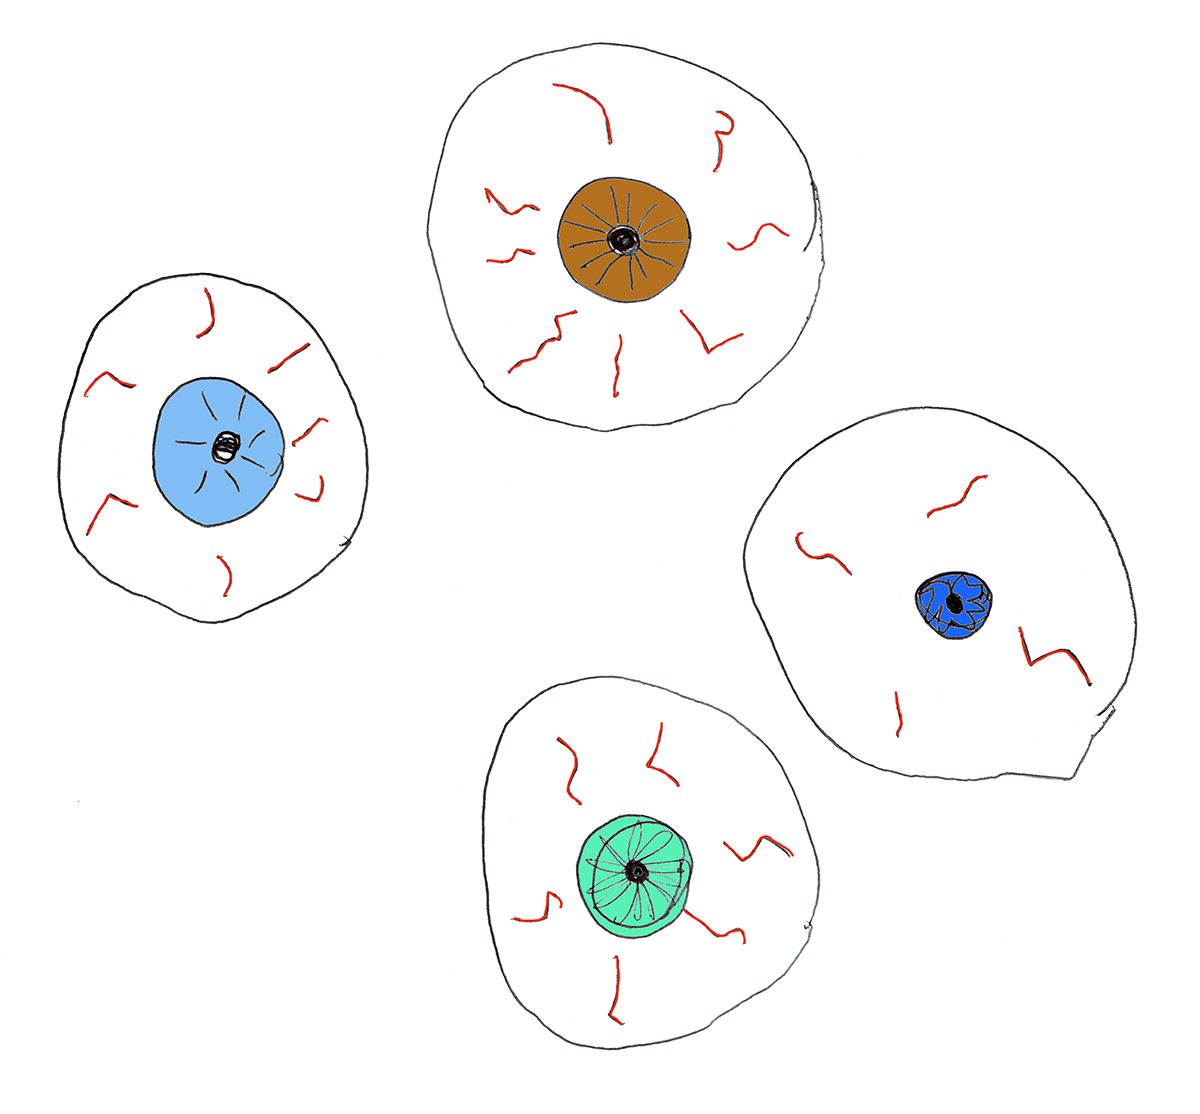 3 Ways to Get More Eyeballs on Your Content